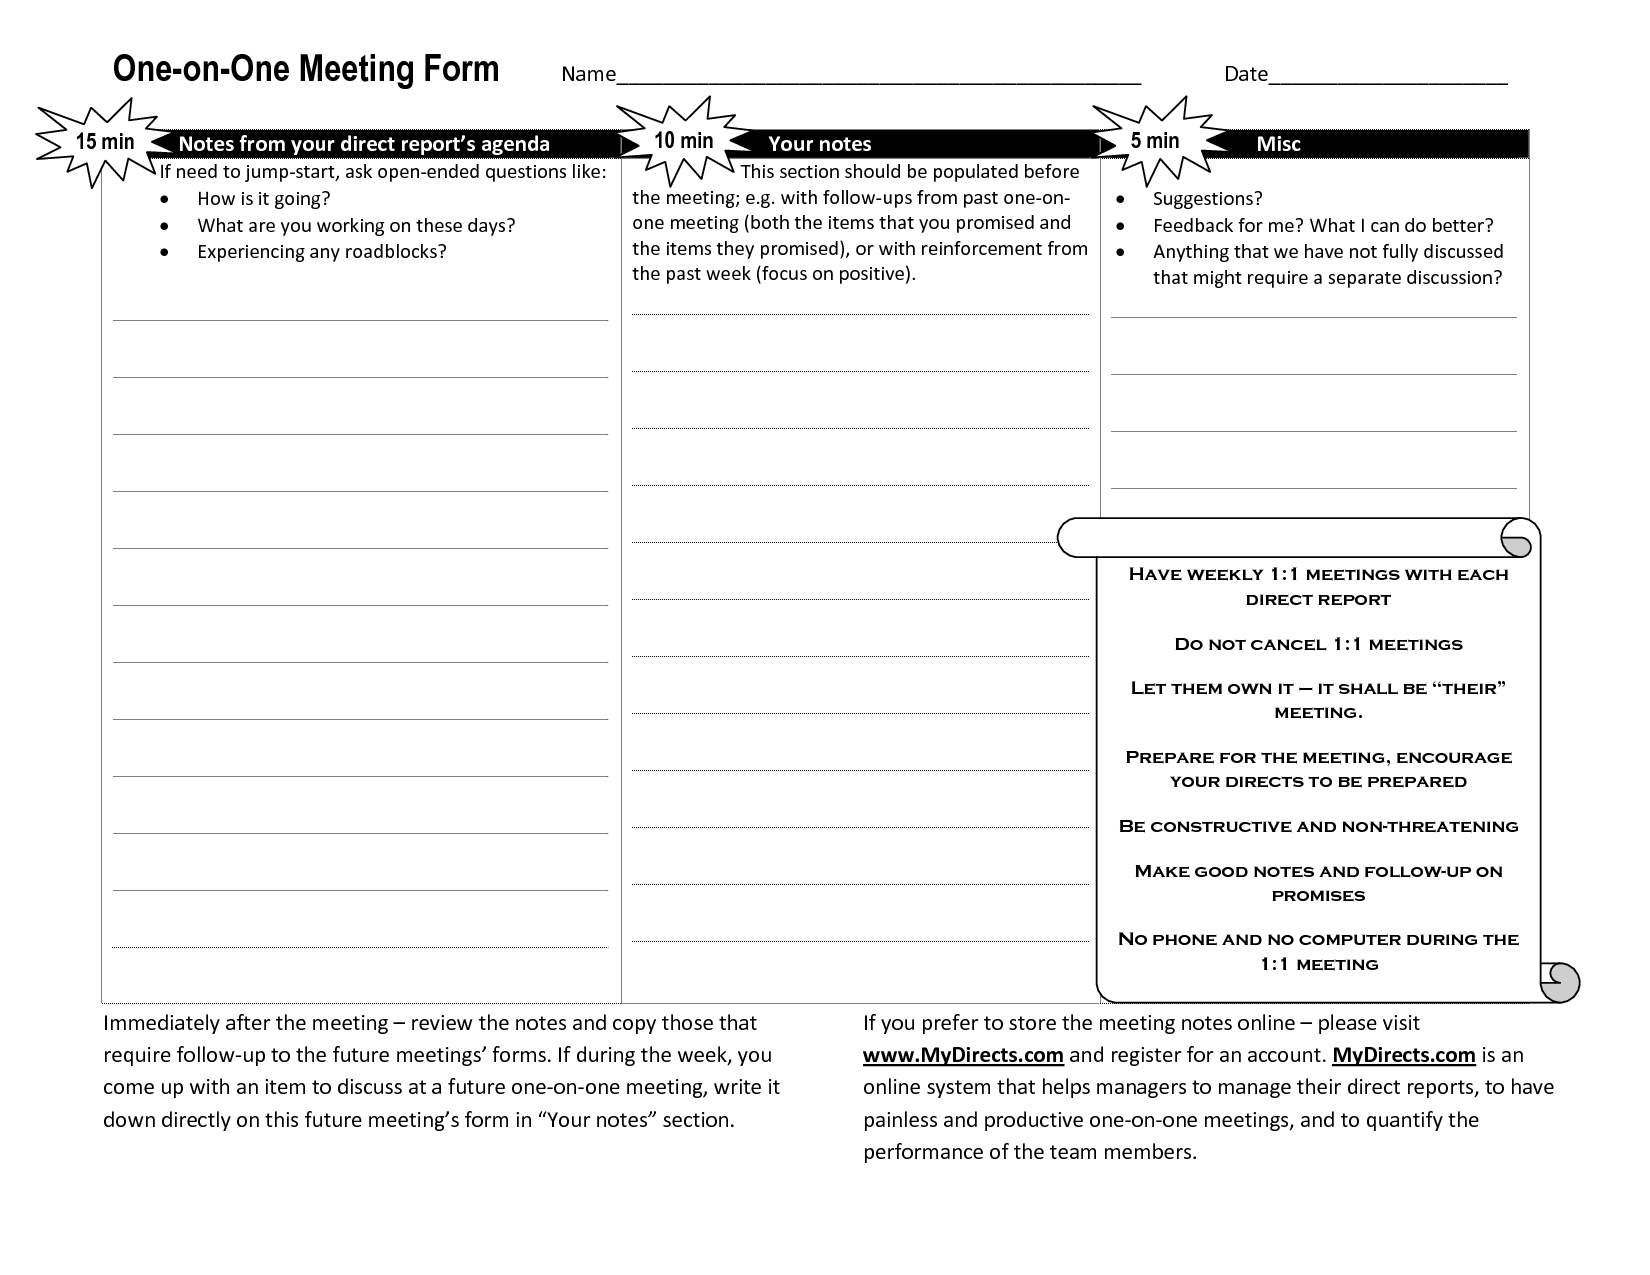 One-on-one meeting agenda template | Business/ Management | Pinterest